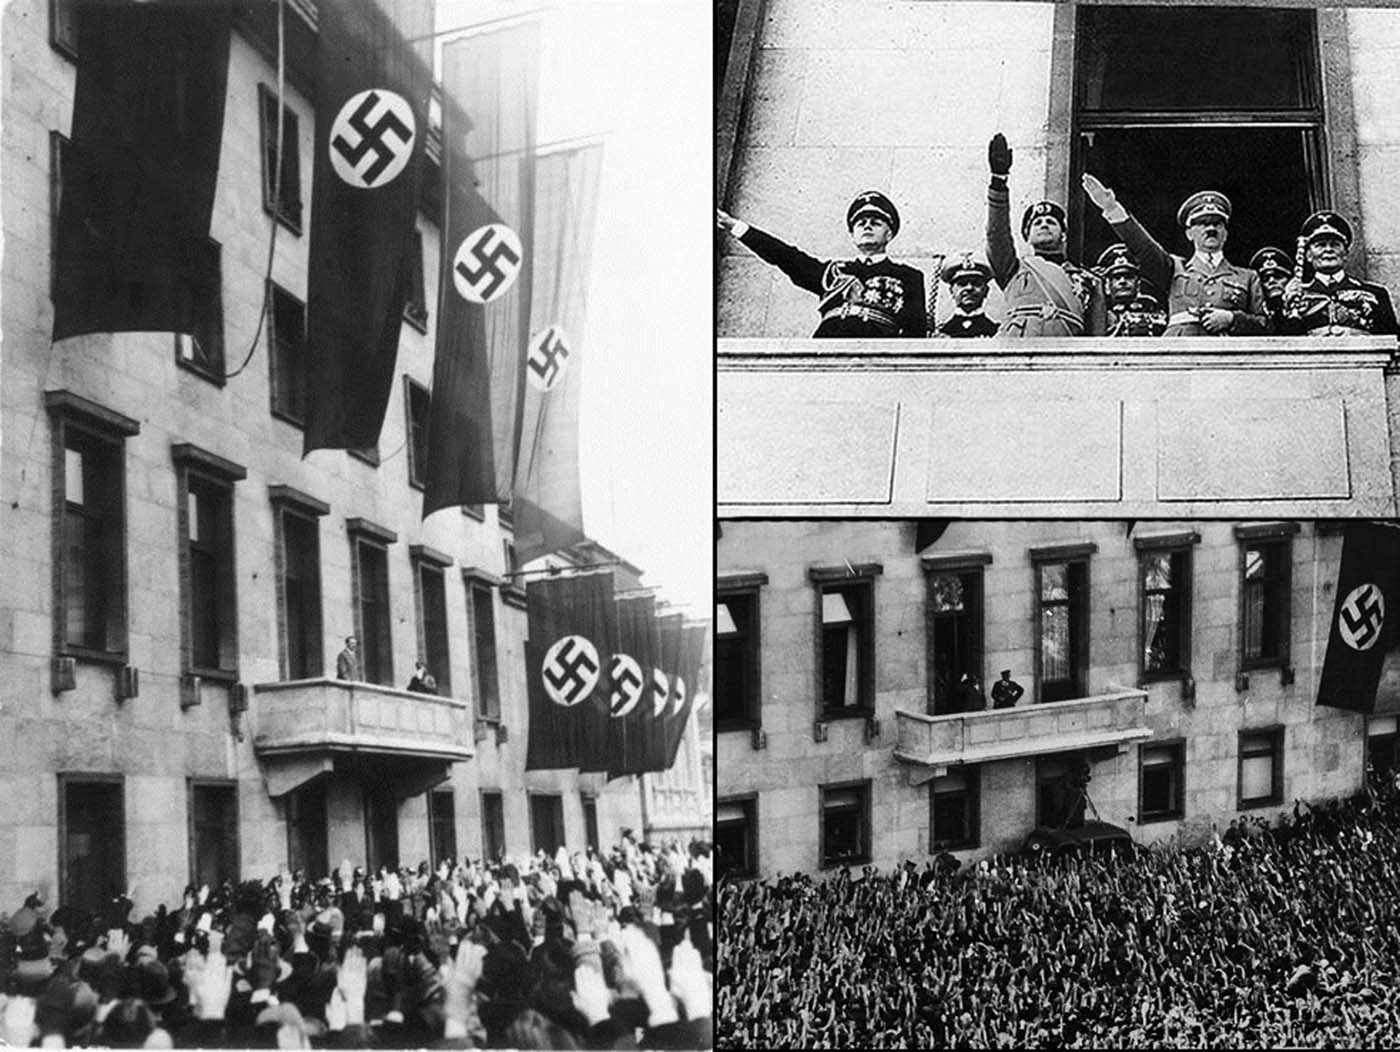 Hitler standing on the same balcony.